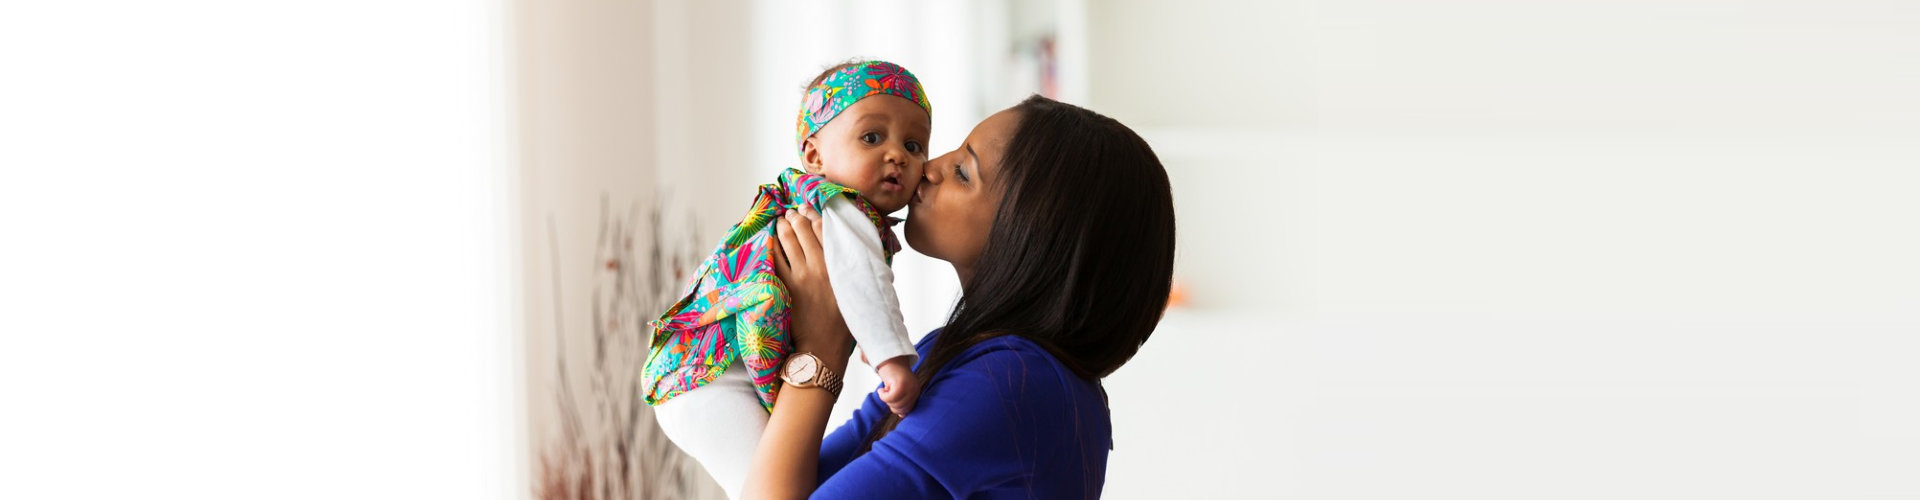 beautiful woman carrying and kissing the kid